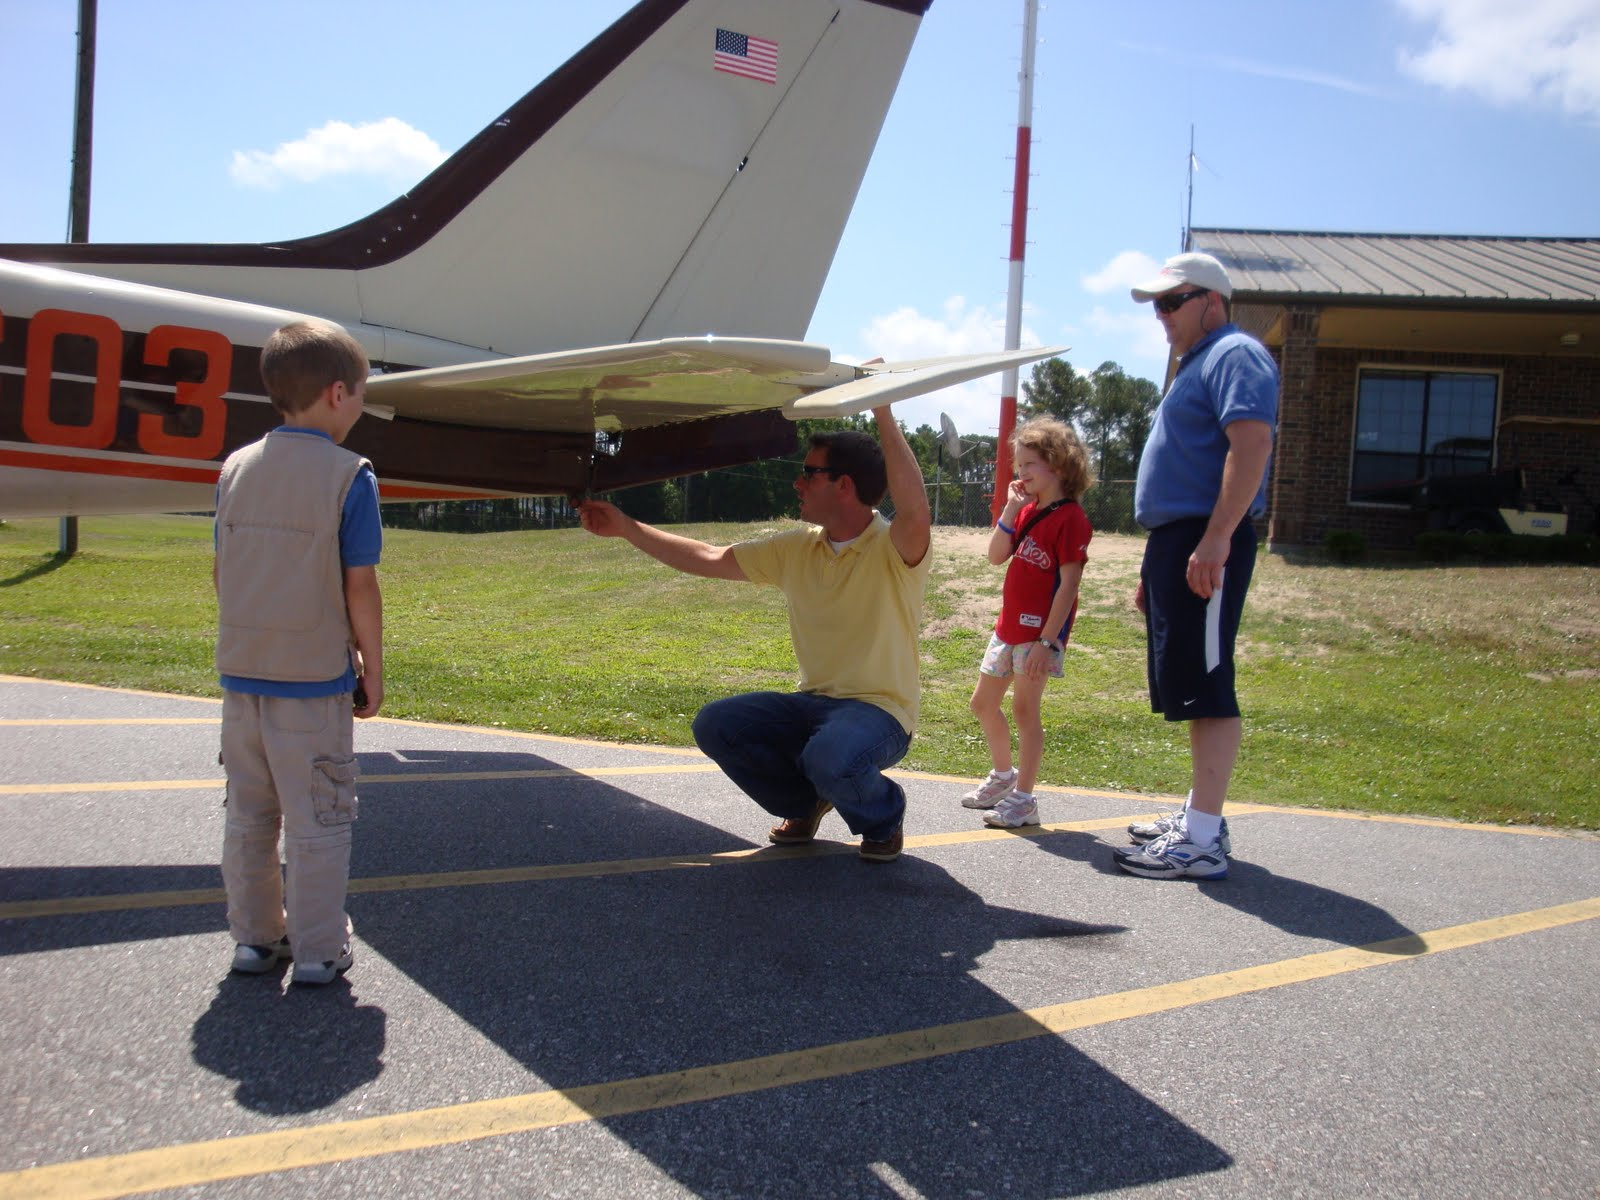 You Fly, Girl: Learn How To Fly A Plane Day